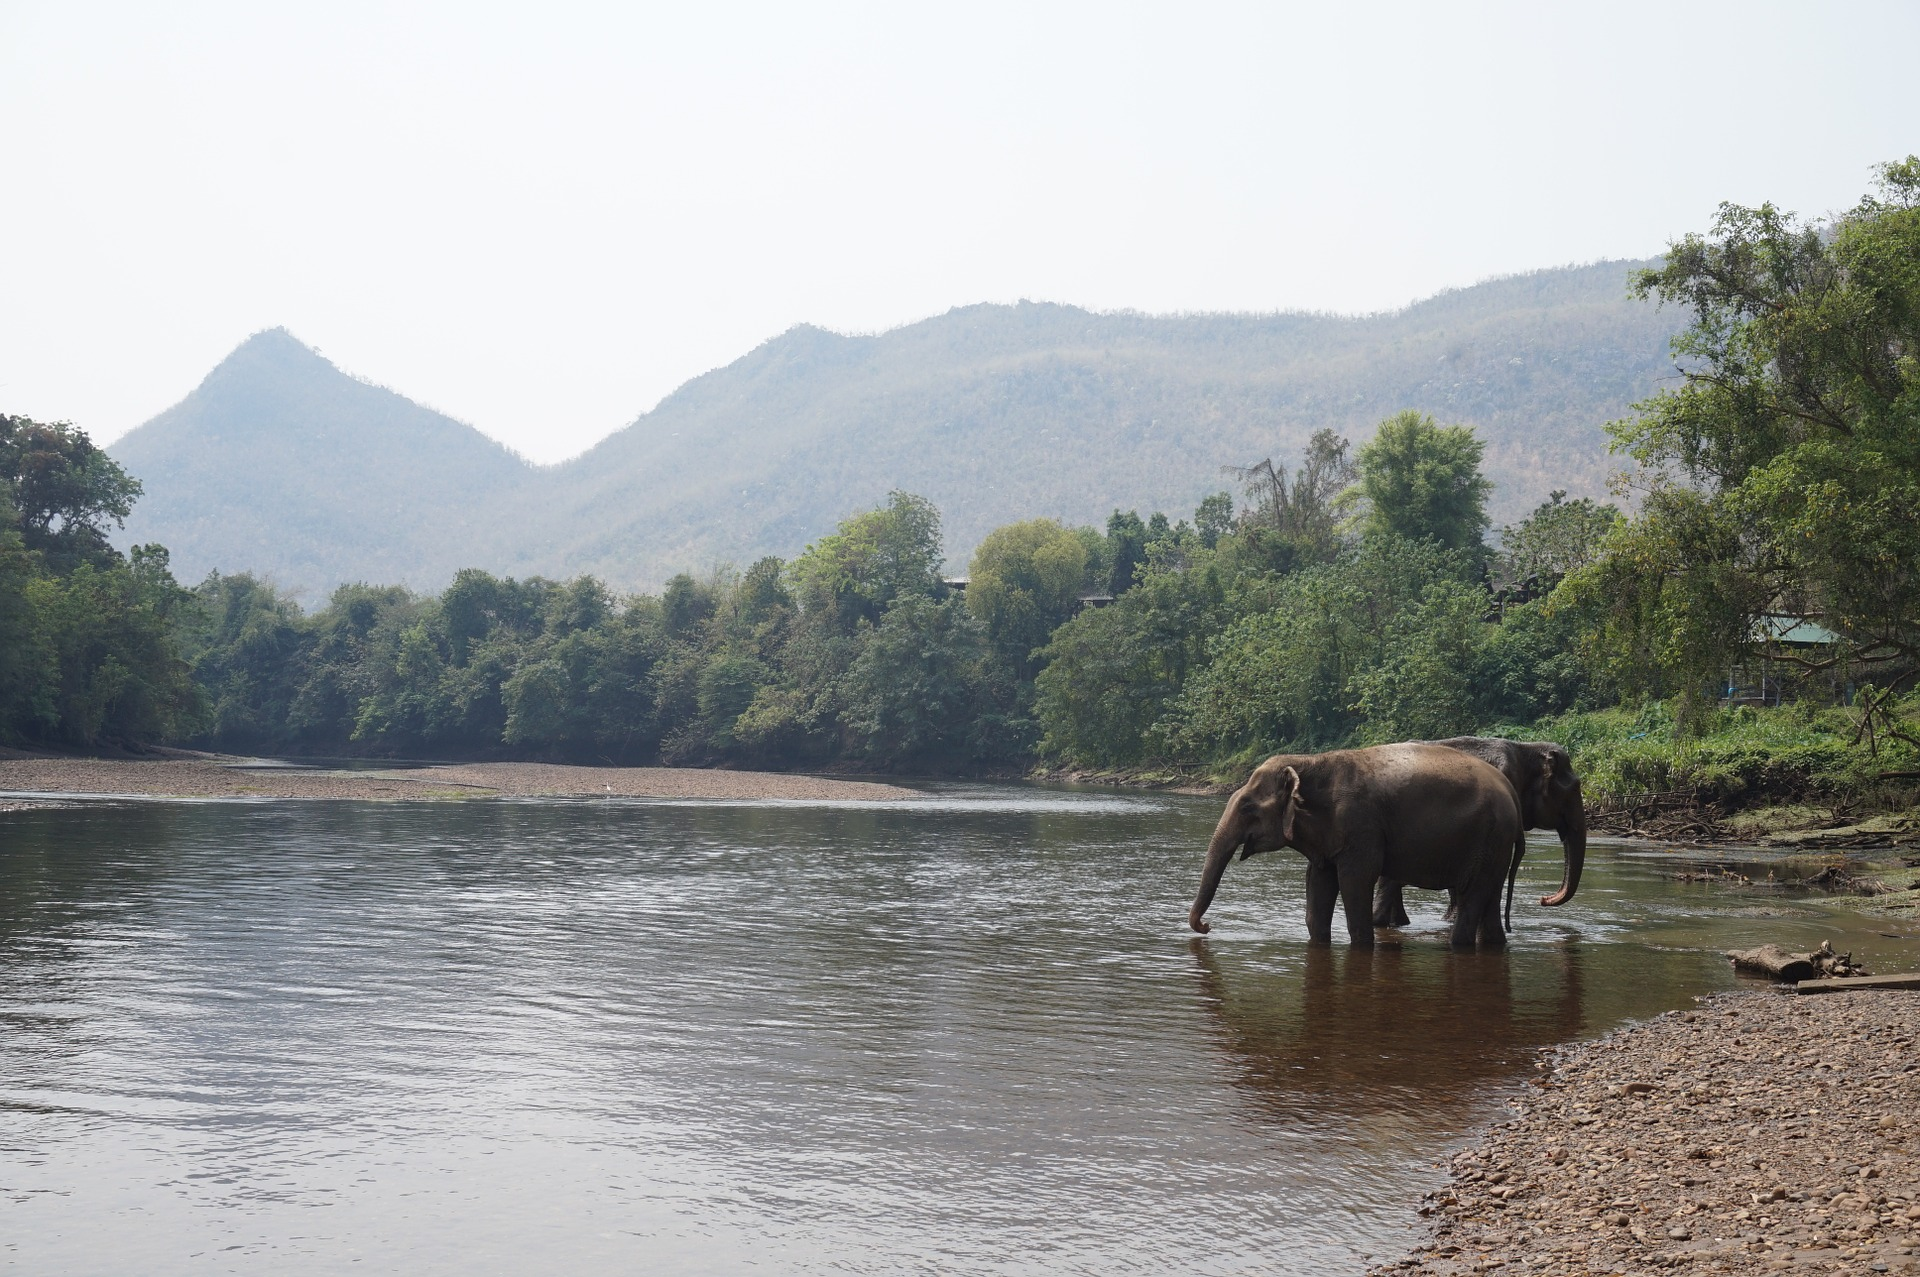 Thai Elephant In a River